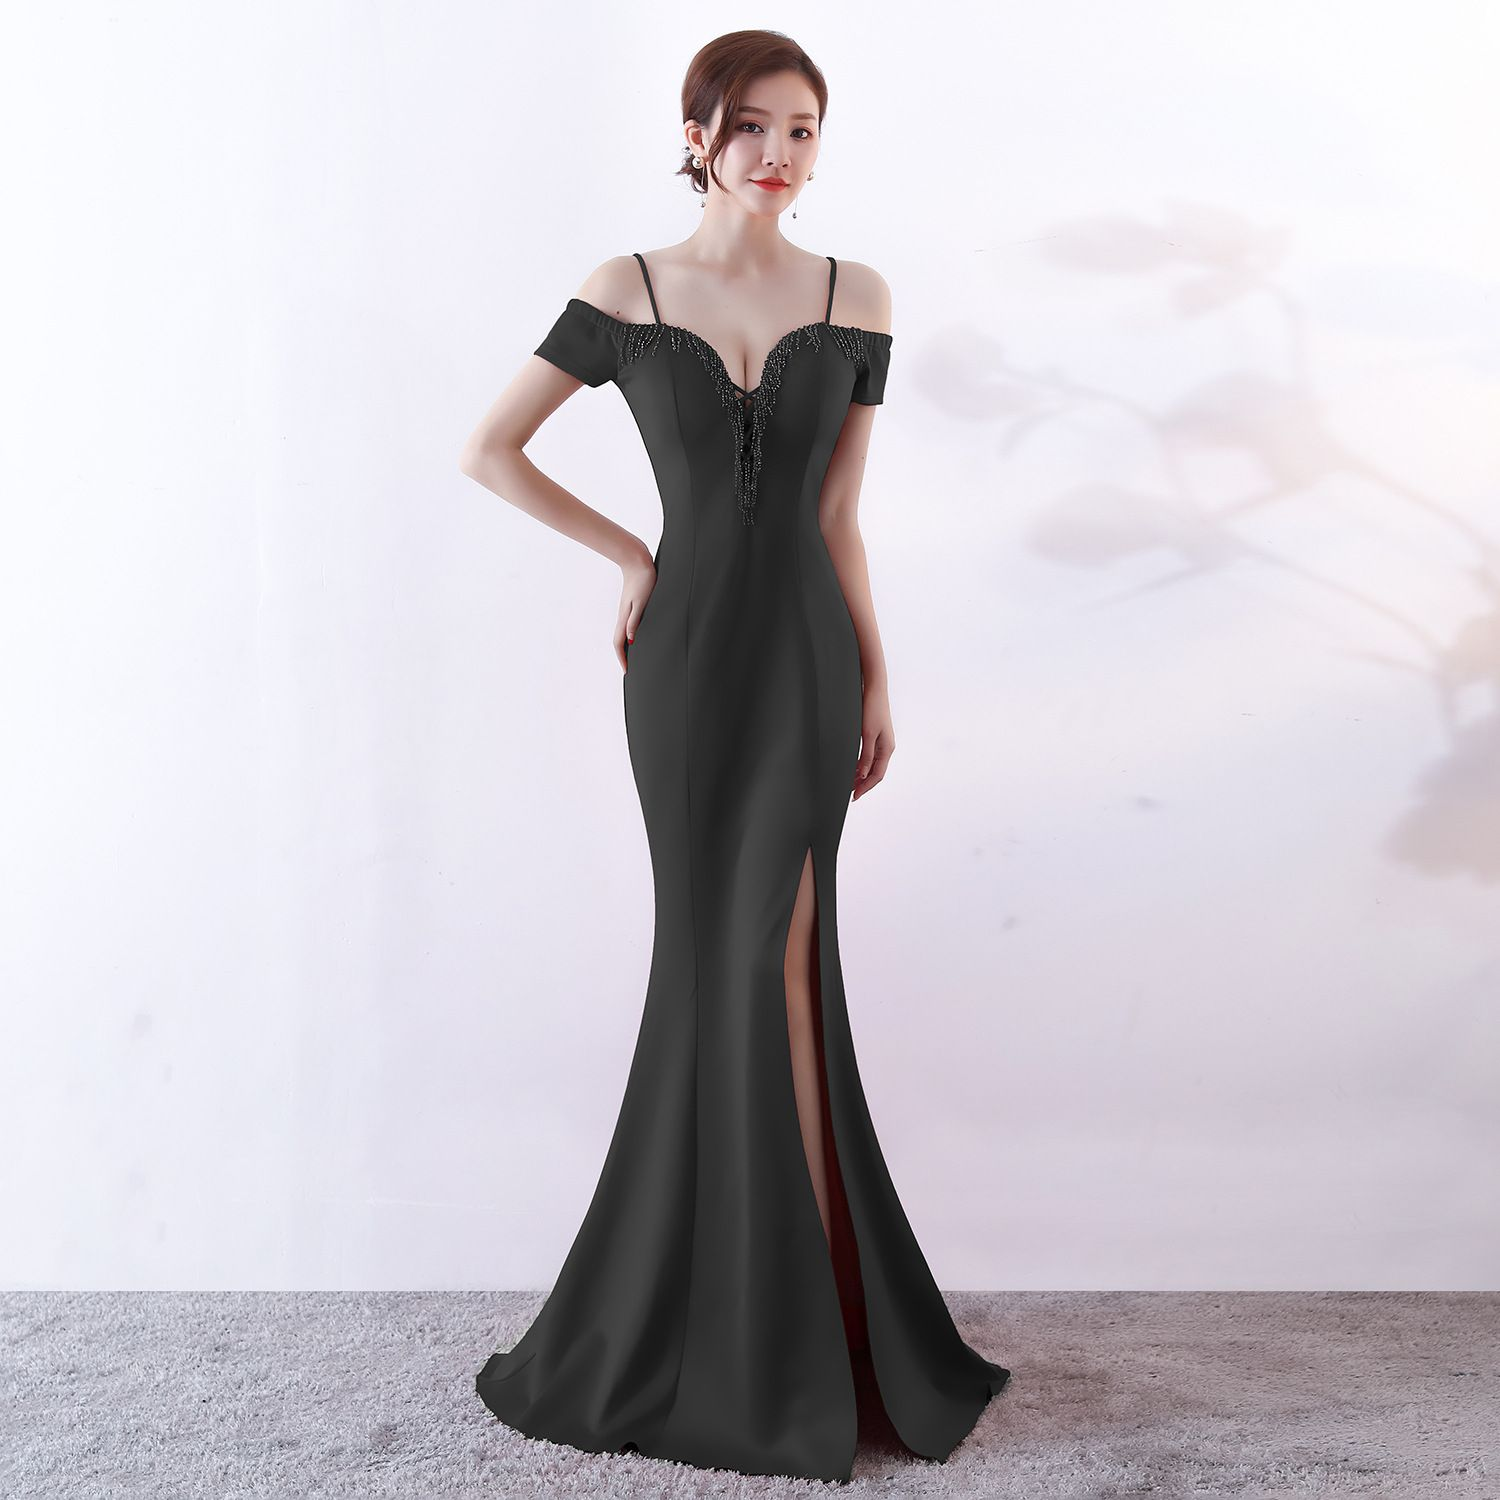 Chic / Beautiful Solid Color Ivory Evening Dresses  2019 Trumpet / Mermaid Spaghetti Straps Beading Tassel Sleeveless Backless Split Front Floor-Length / Long Formal Dresses